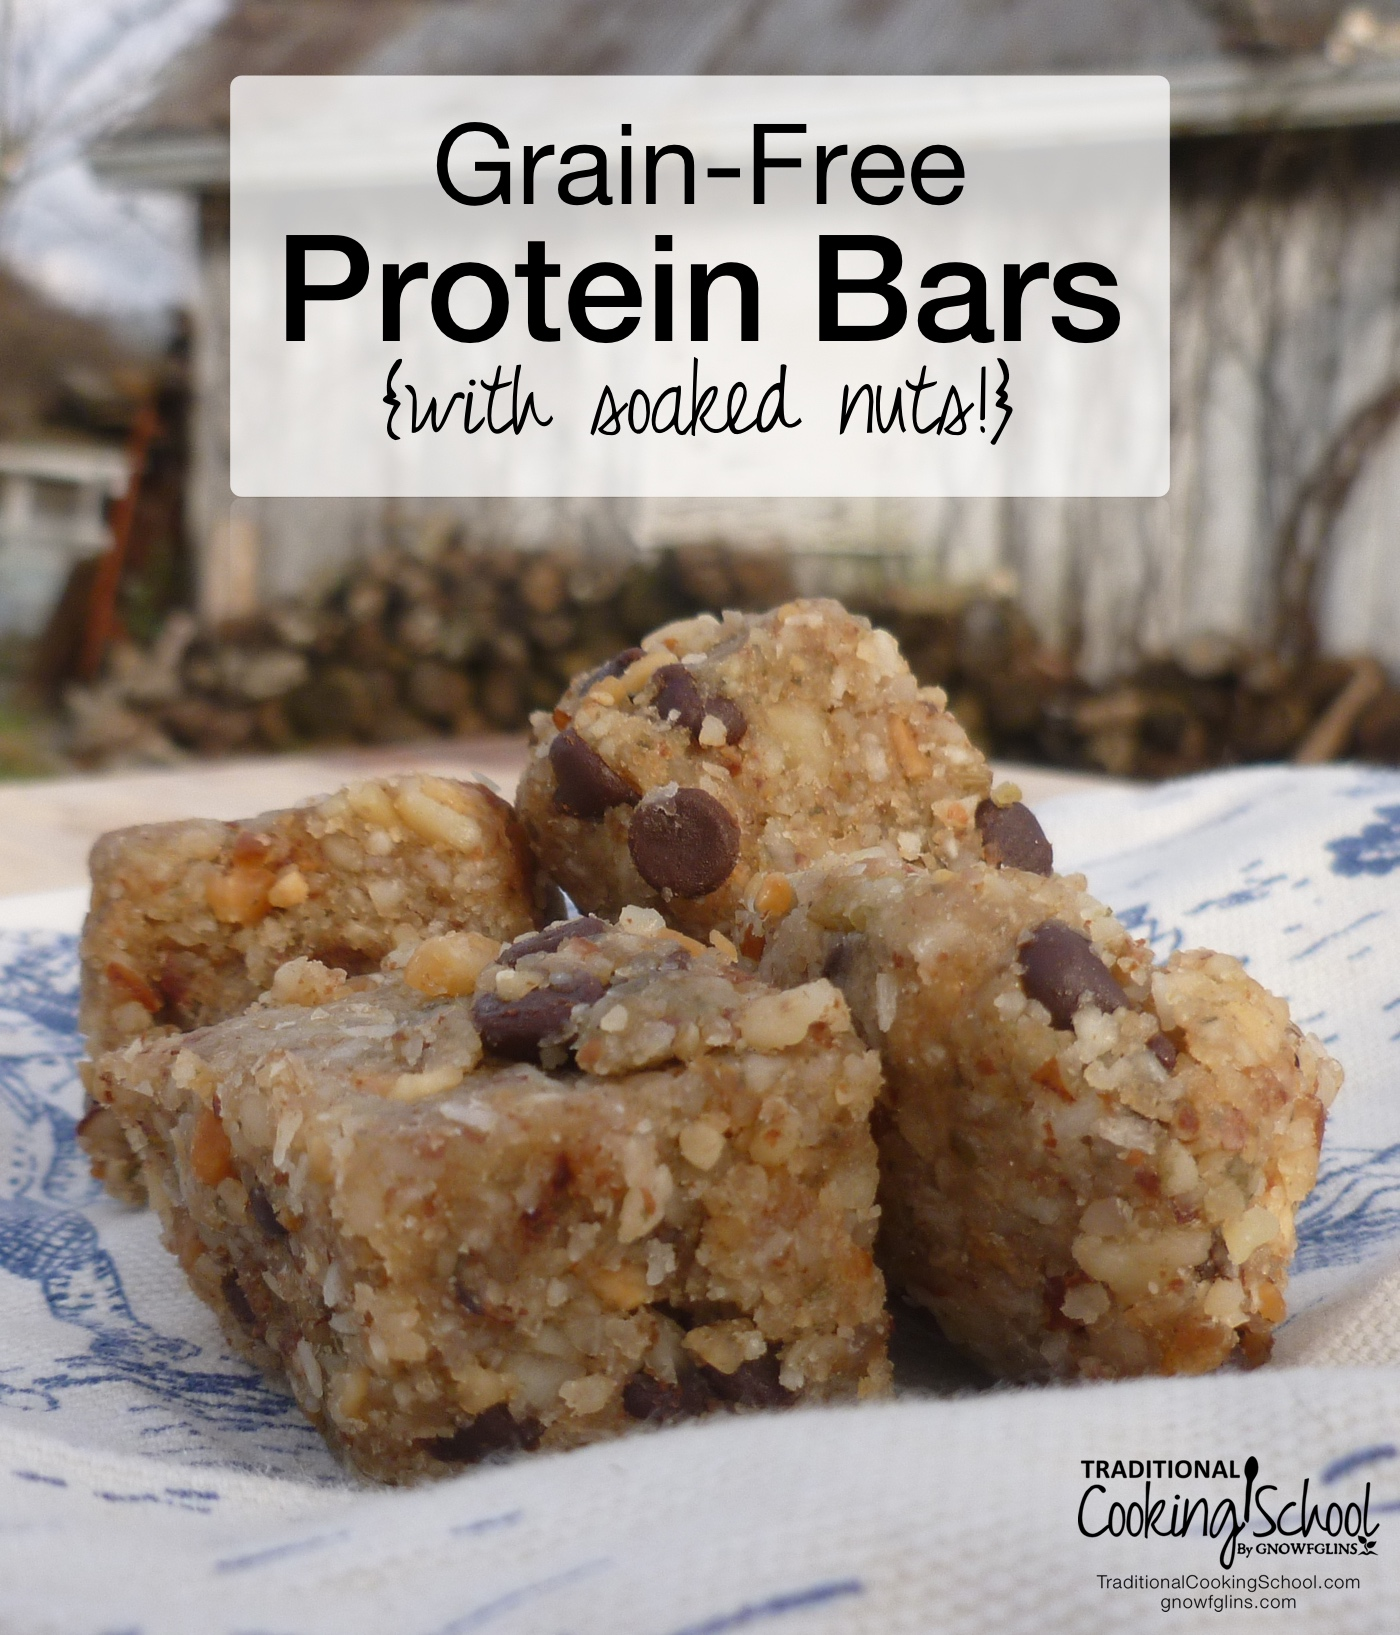 Grain-Free Protein Bars {with soaked nuts!} | About a month ago I had one of those ugggh moments. A good friend of mine had excitedly shared a new idea for on-the-go protein bars -- something low in sugar, high in protein, and satisfyingly kid-friendly. Yet, I snubbed her idea, passing it off as having too much sugar. The next week, when she visited again to pick up her milk share at our home, she brought me a sample of her newly concocted protein bar. Boy, was it good! So, I ate my humble pie, asked for forgiveness, and requested to borrow her idea and share this wonderful creation with you all. | TraditionalCookingSchool.com